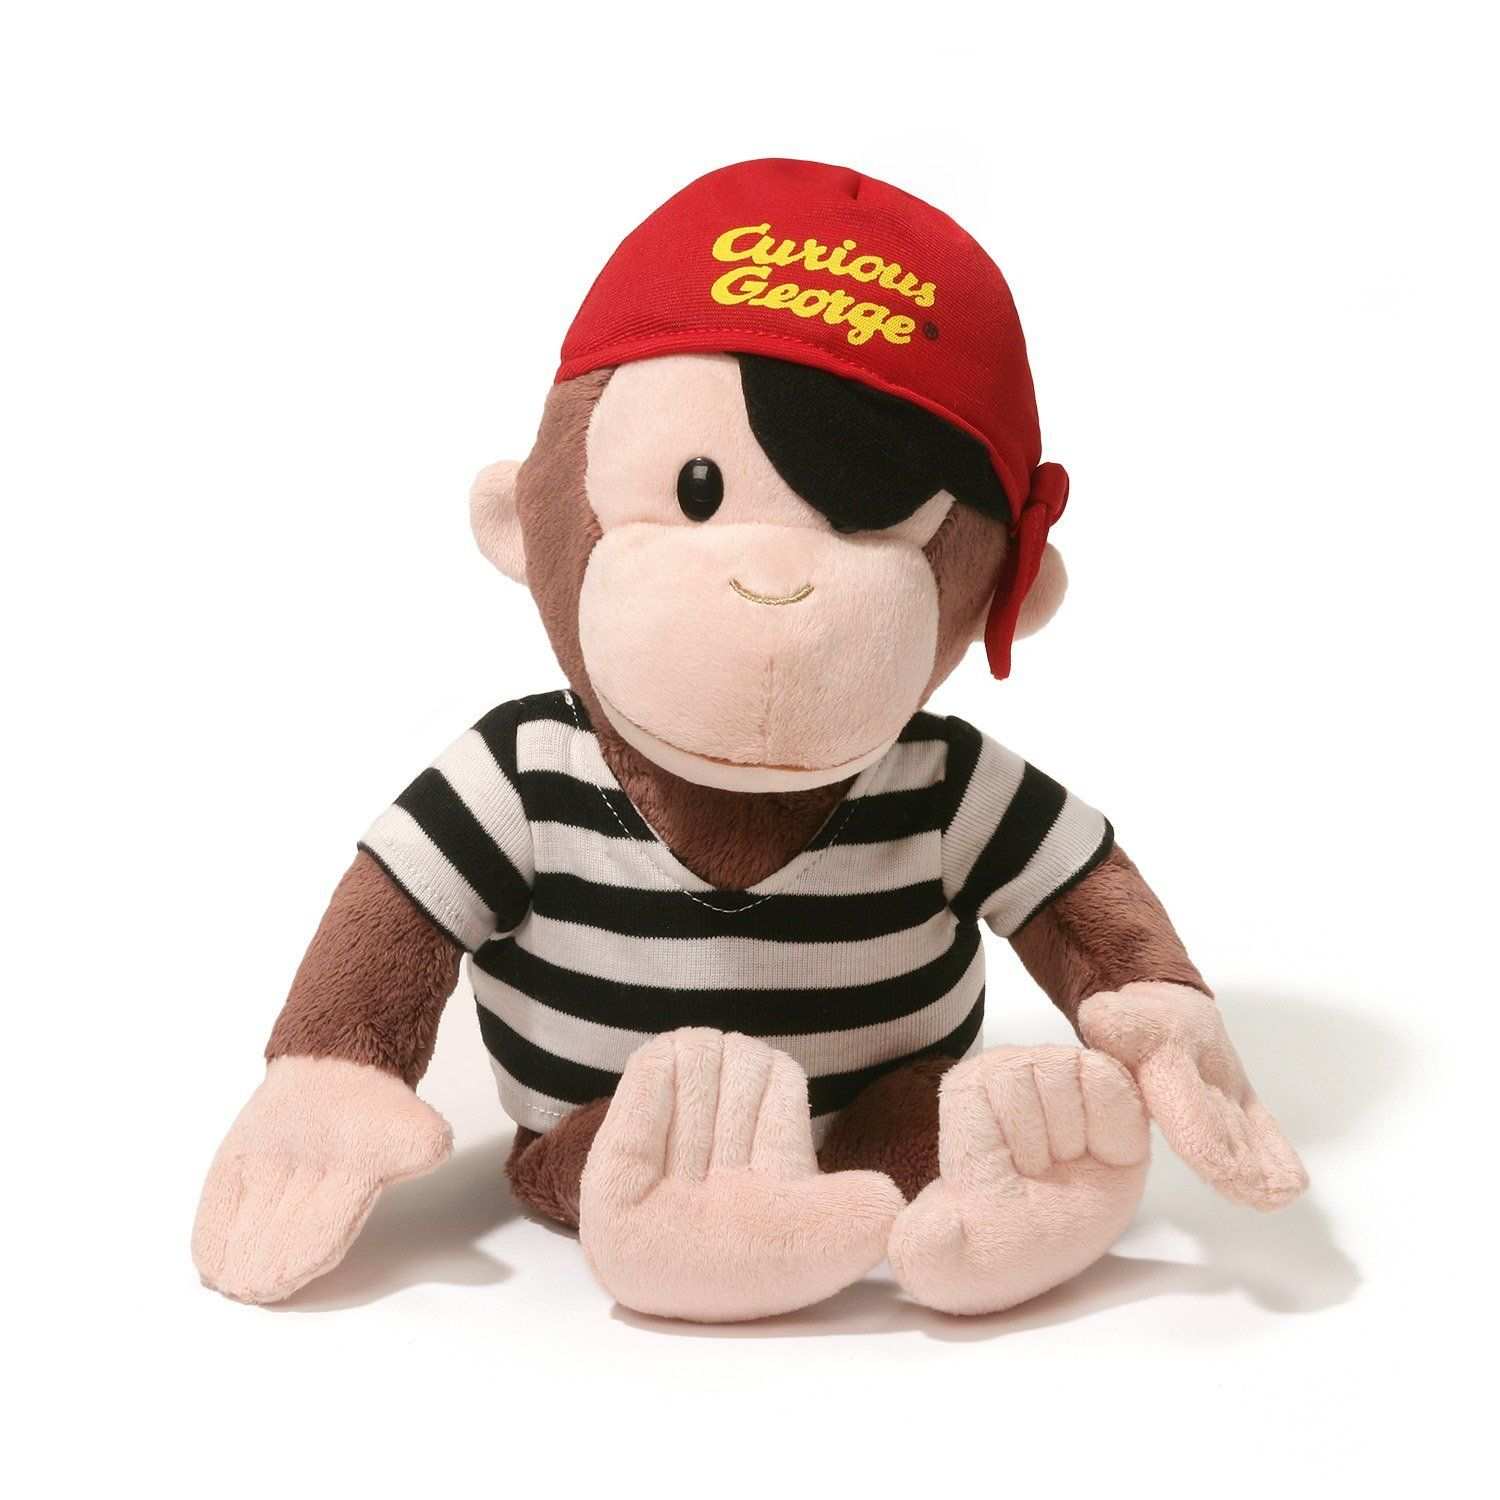 Curious George Pirate 13 inch - Stuffed Animal by GUND (4056998)